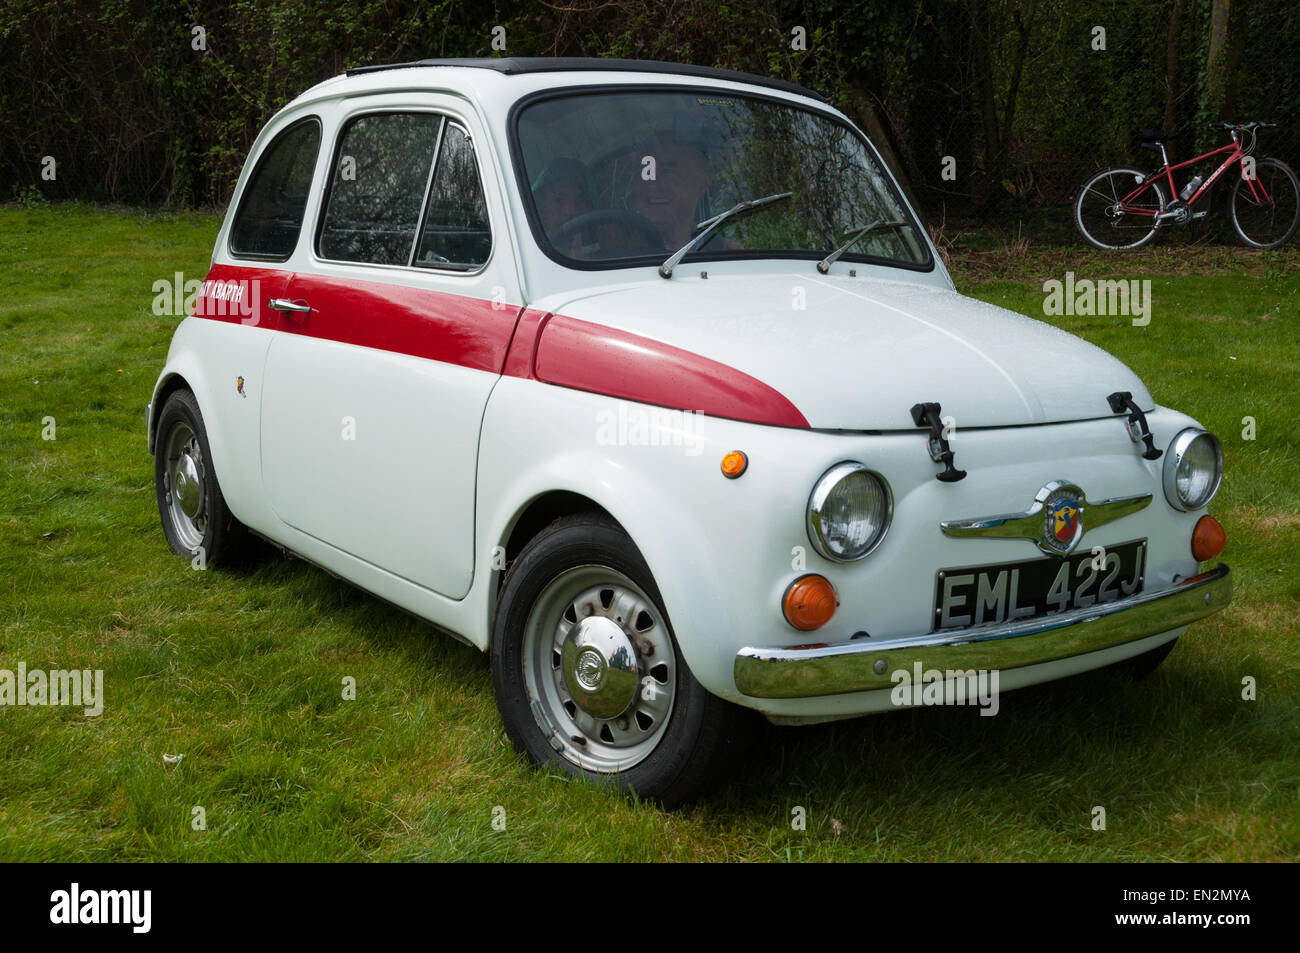 oldtimer fiat 500 stockfotos oldtimer fiat 500 bilder alamy. Black Bedroom Furniture Sets. Home Design Ideas